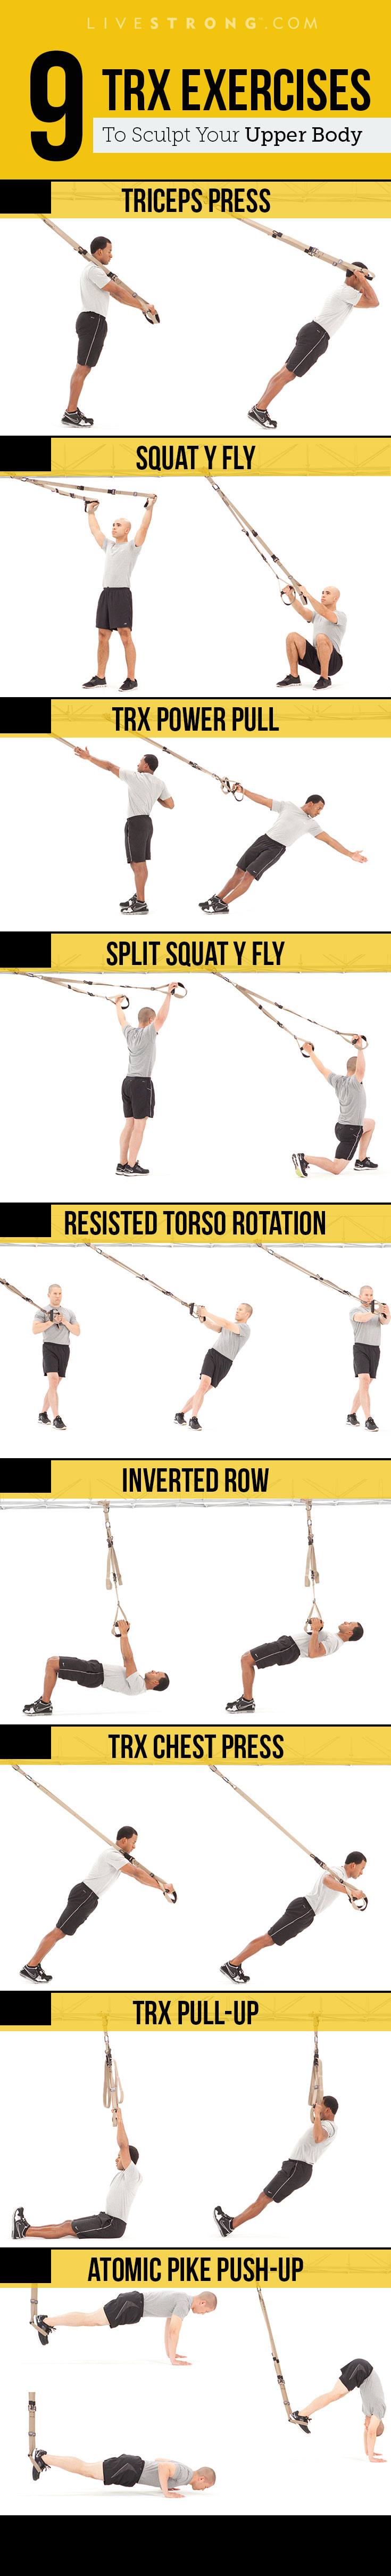 photograph relating to Printable Trx Workout identify 9 TRX Moves in direction of Sculpt an Insanely Sturdy Higher Human body